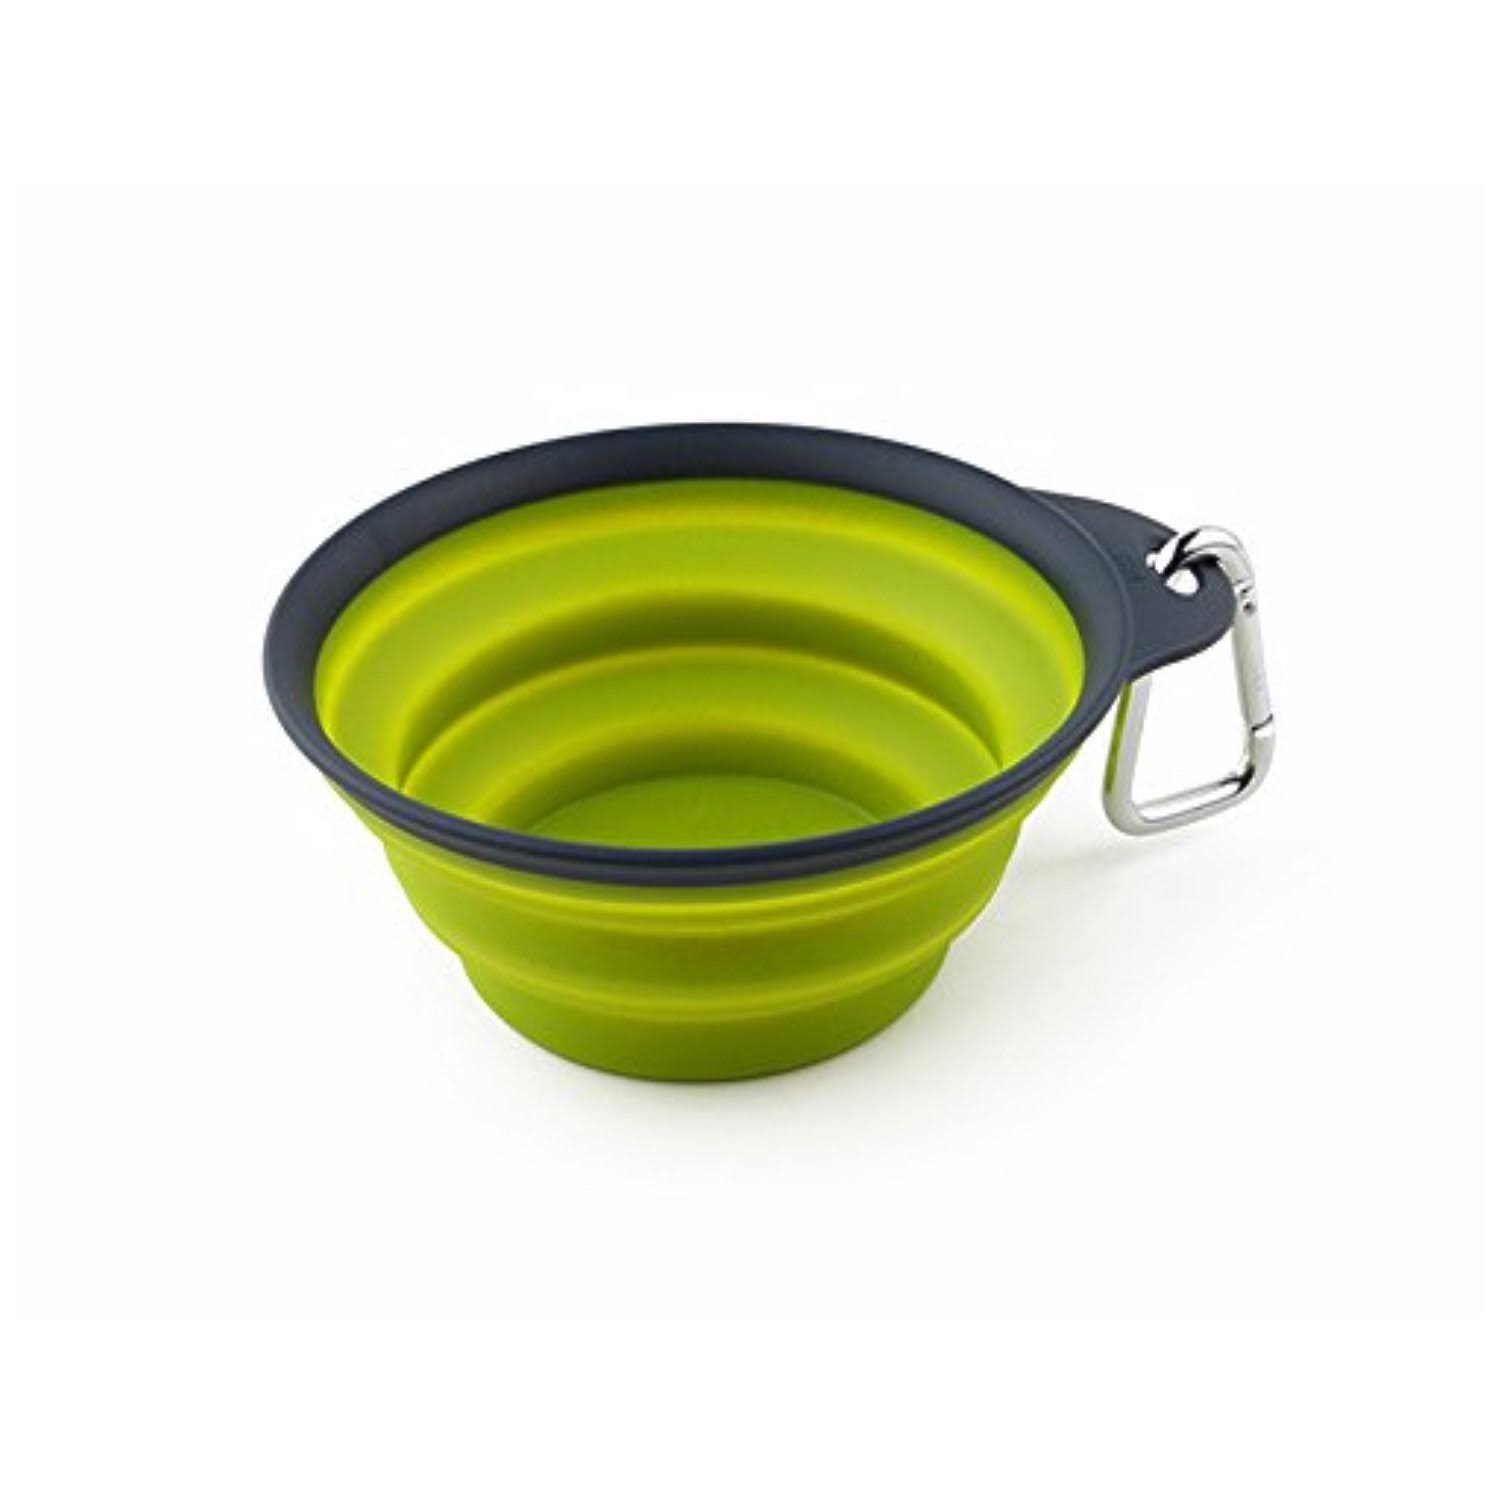 Dexas Popware Collapsible Travel Cup - Green, Small